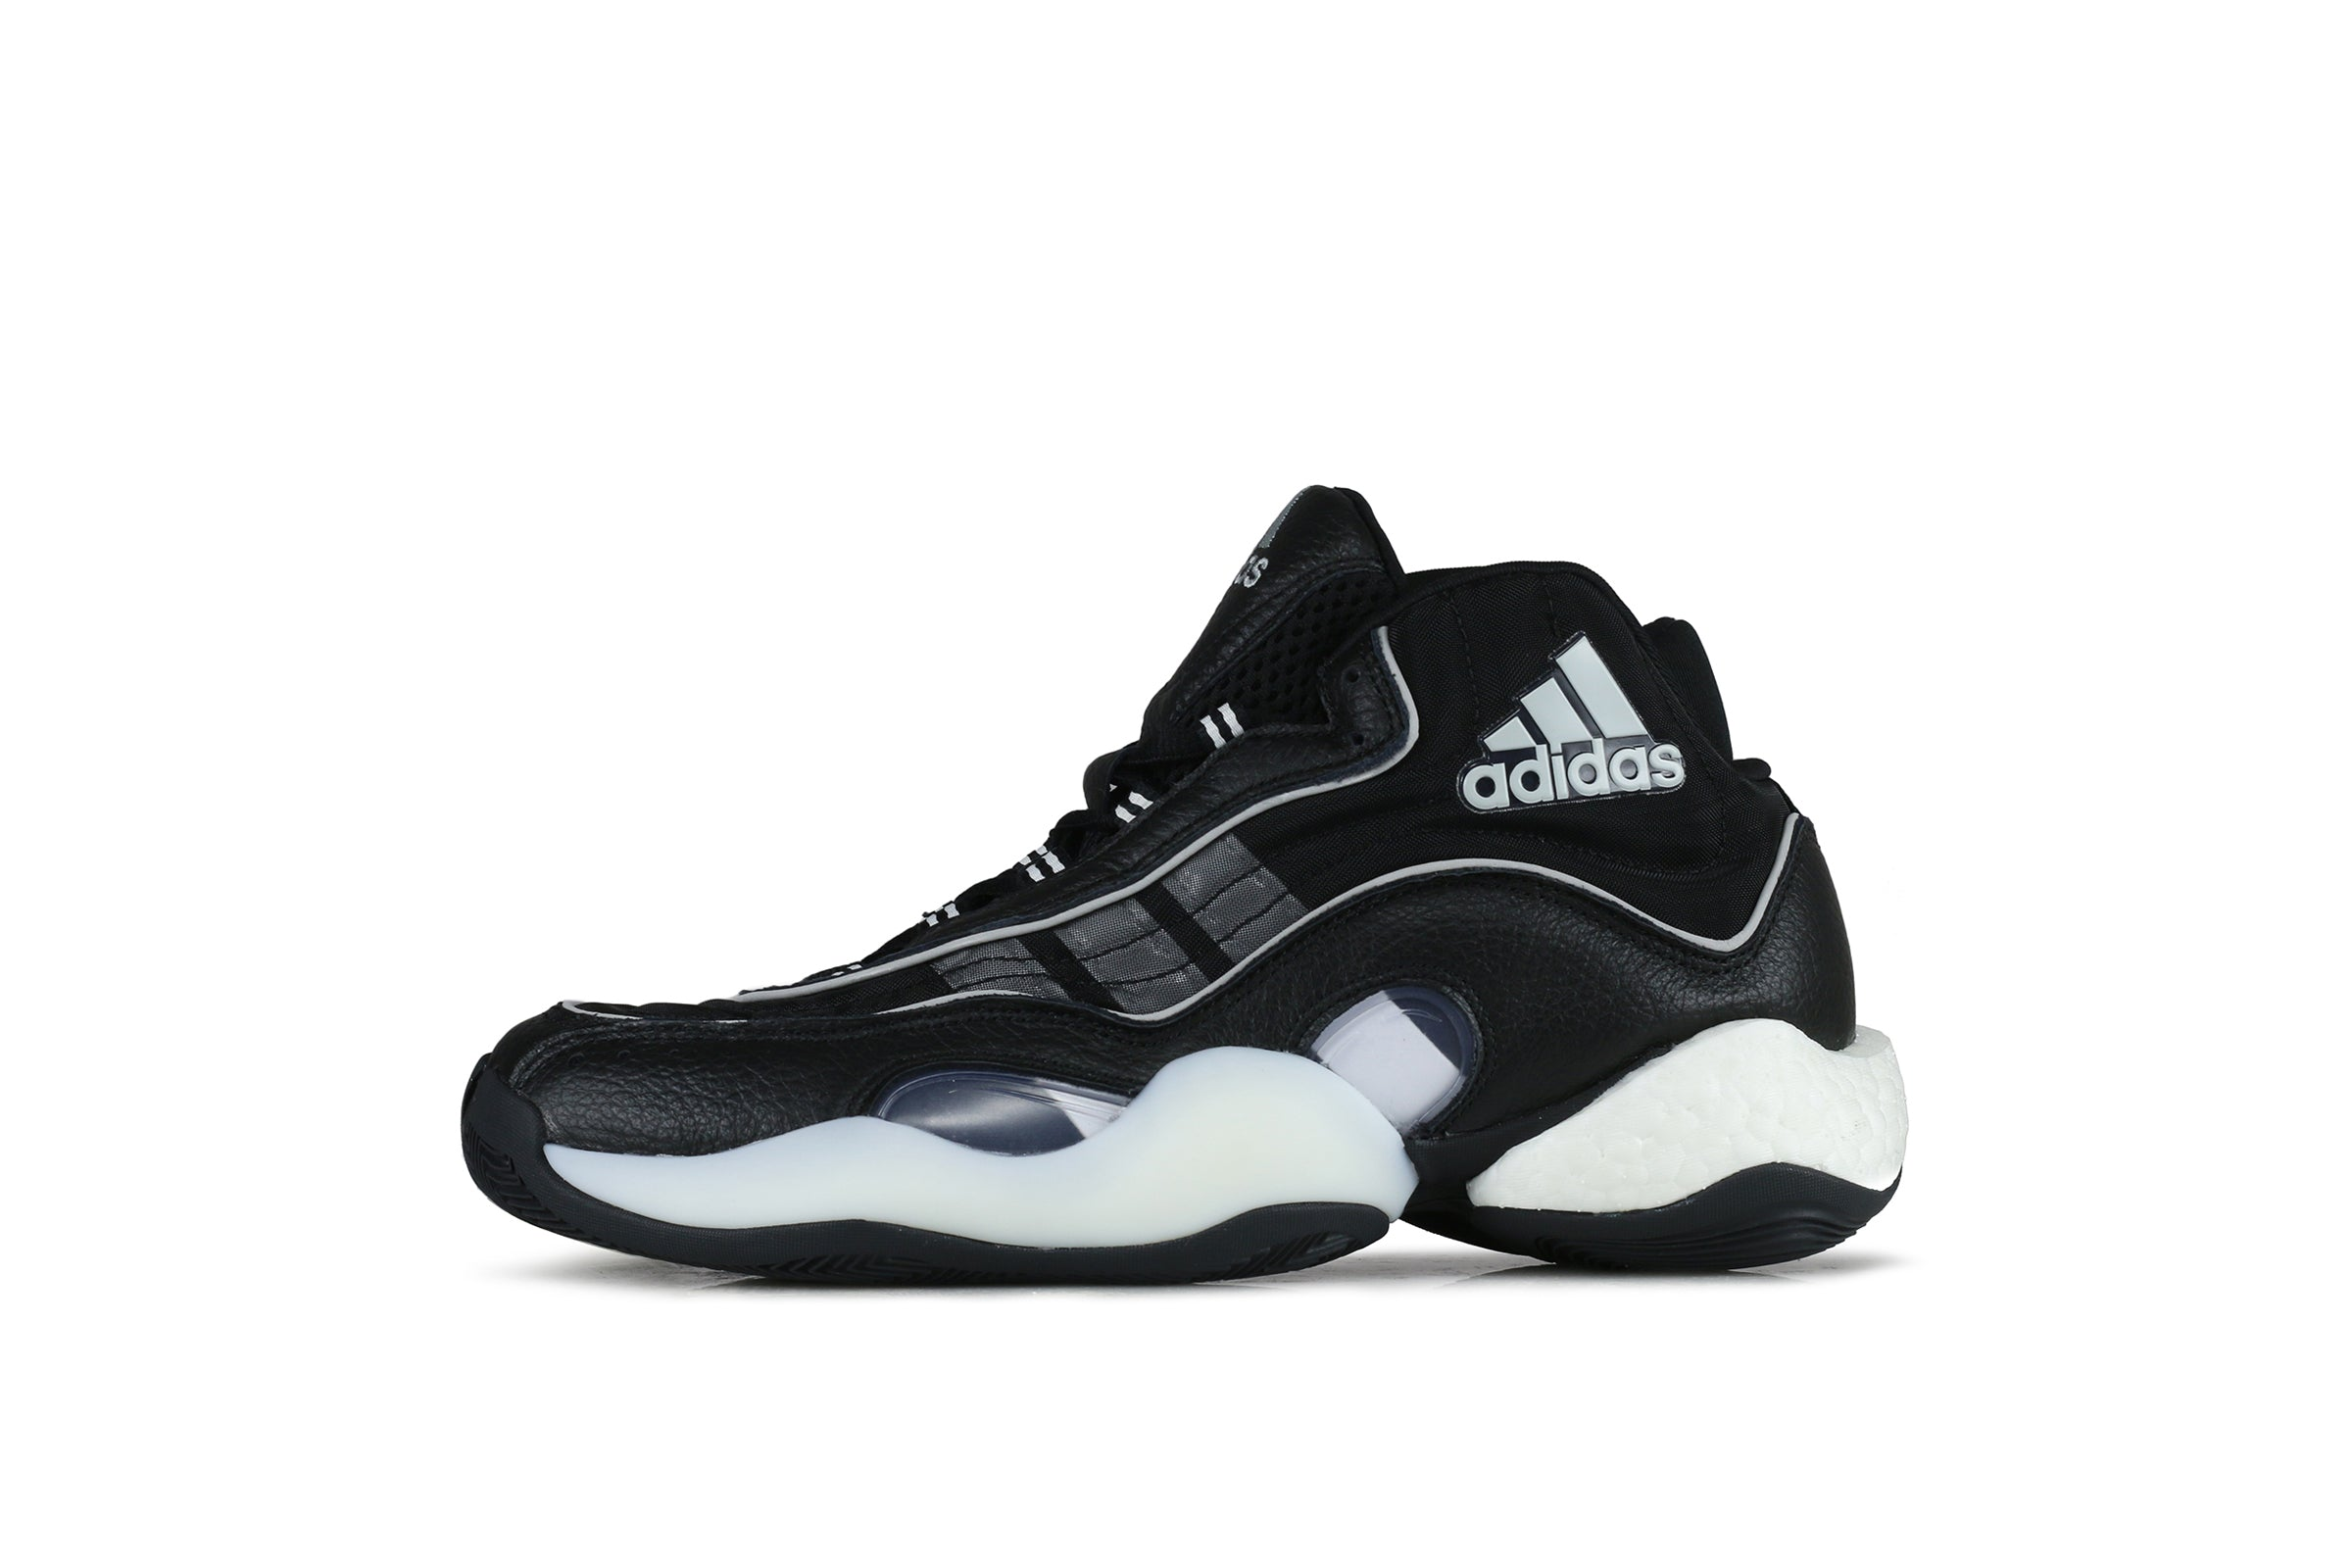 cheap for discount 21587 87aa8 Adidas 98 x Crazy BYW